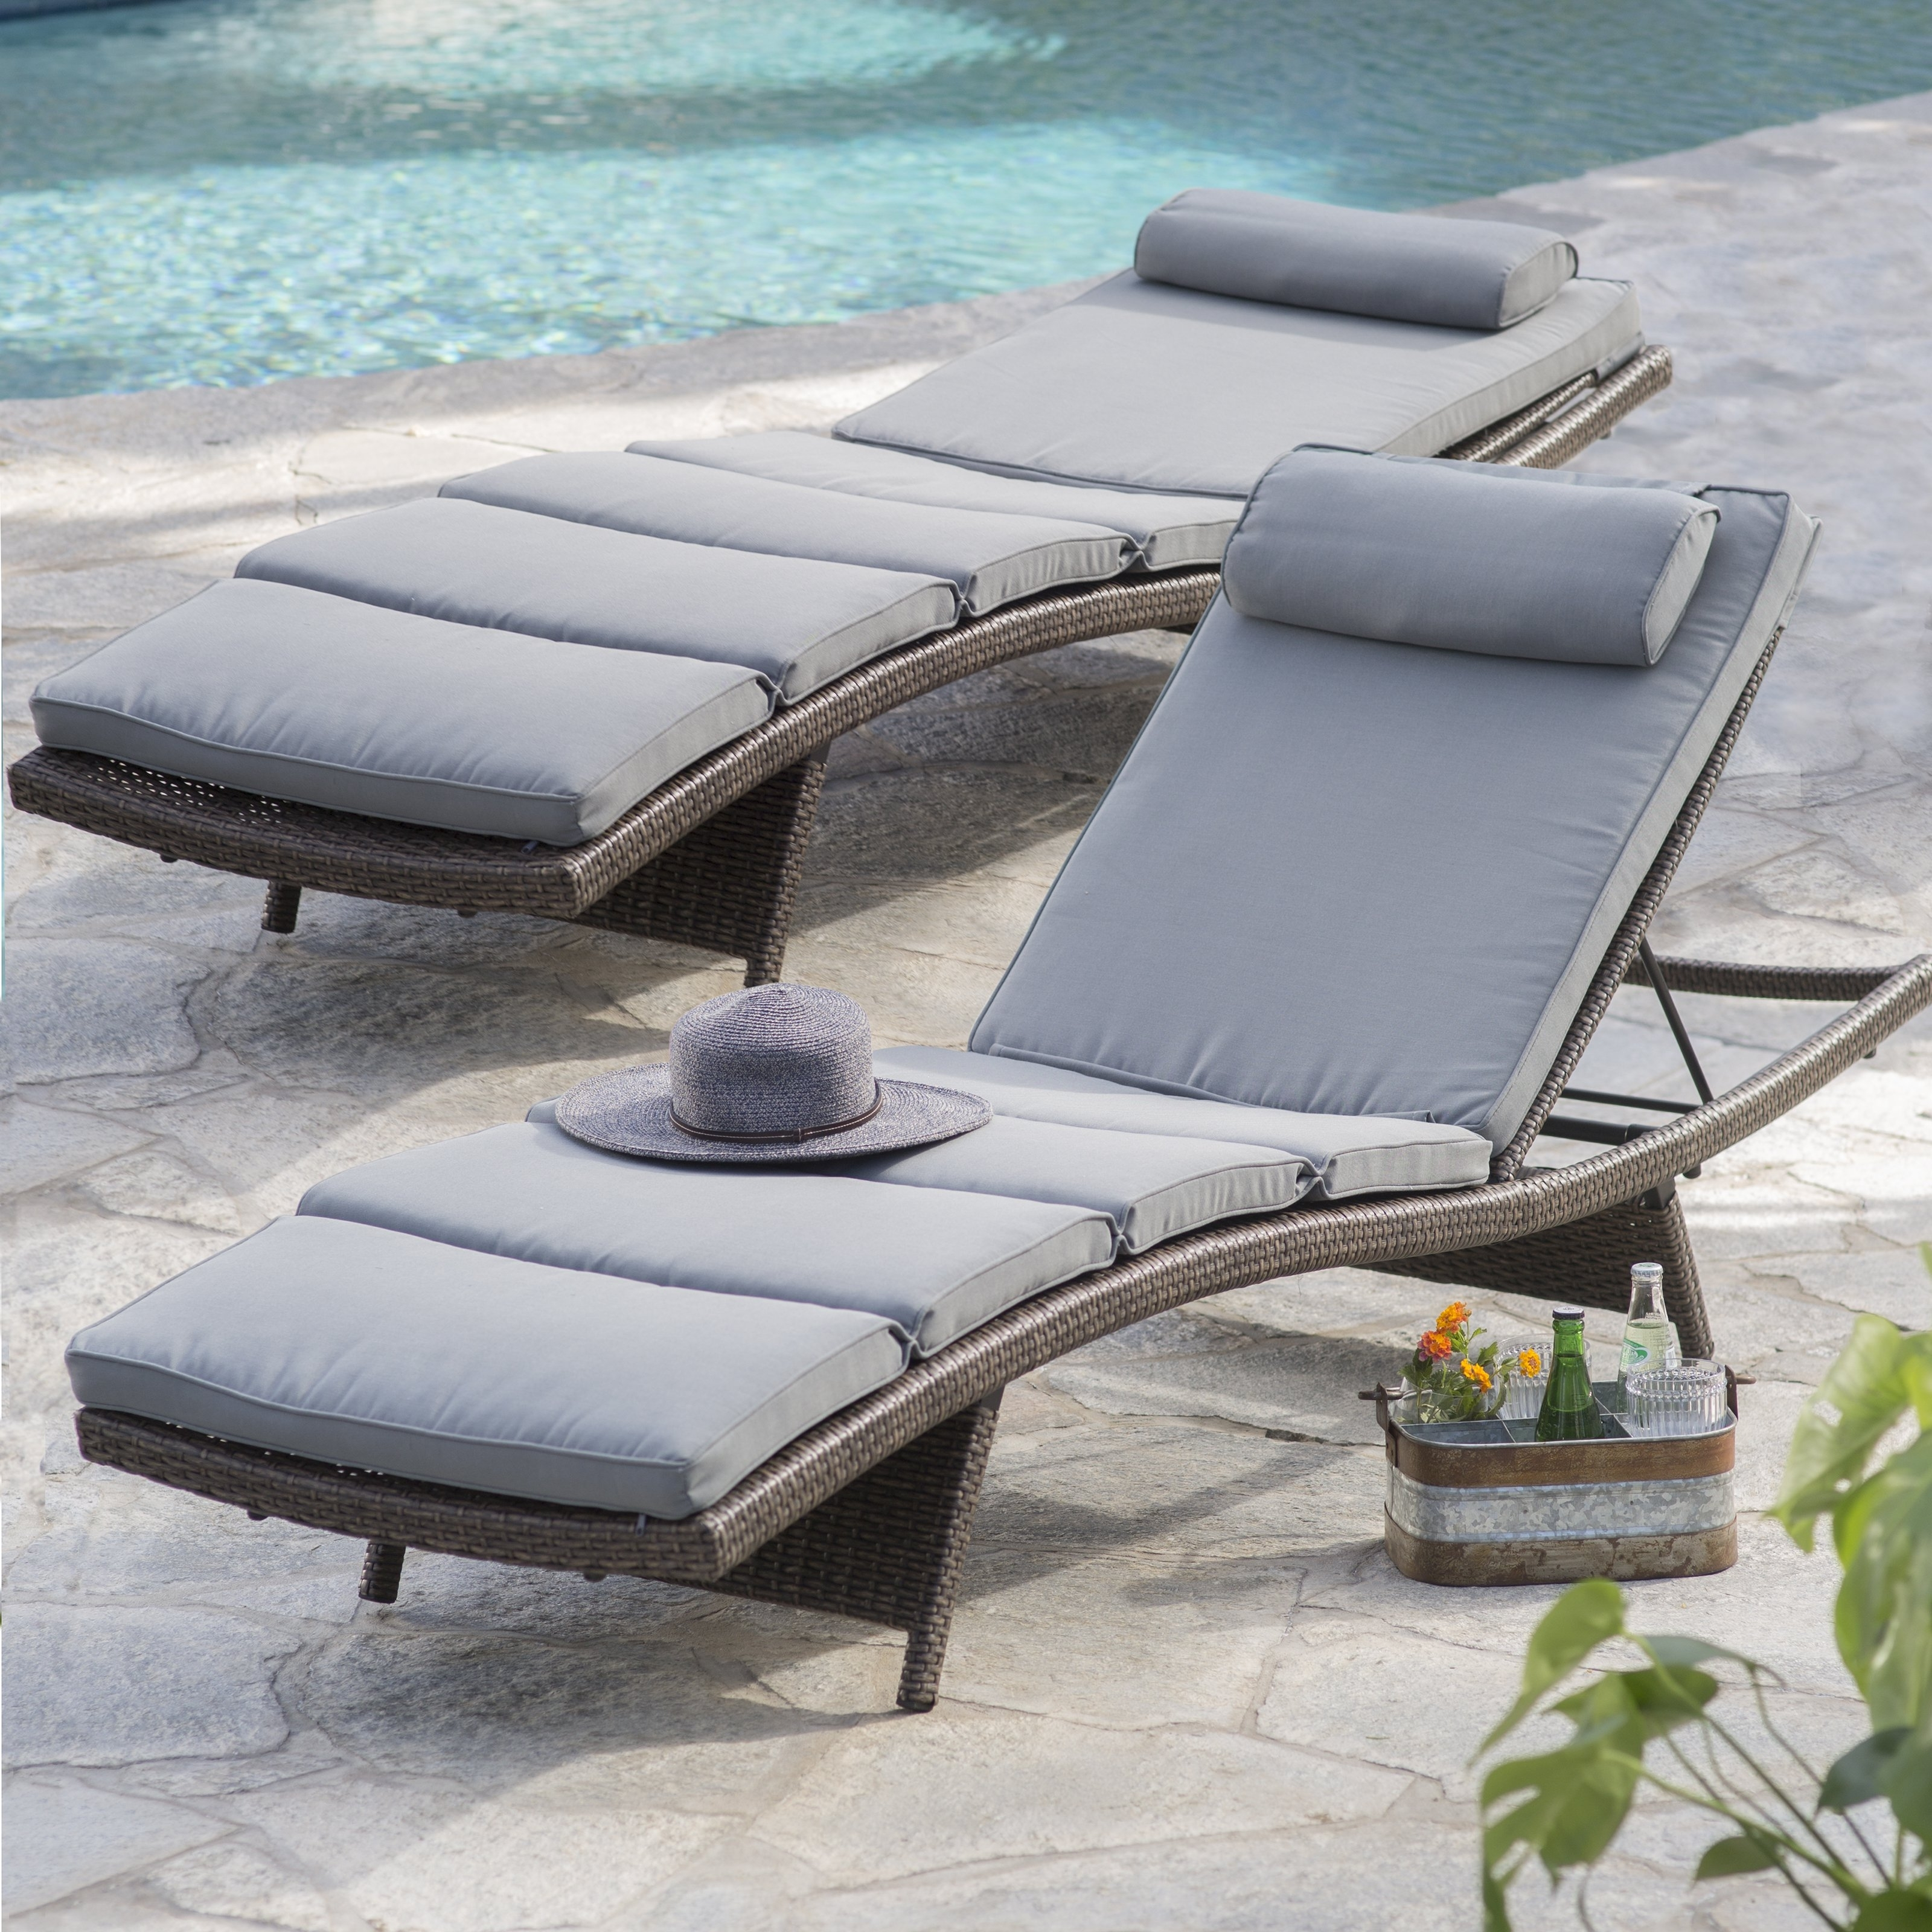 Belham Living Batiki Sun Bed Double Chaise Lounge With Cushion Regarding Most Popular Patio Chaise Lounges (View 12 of 15)